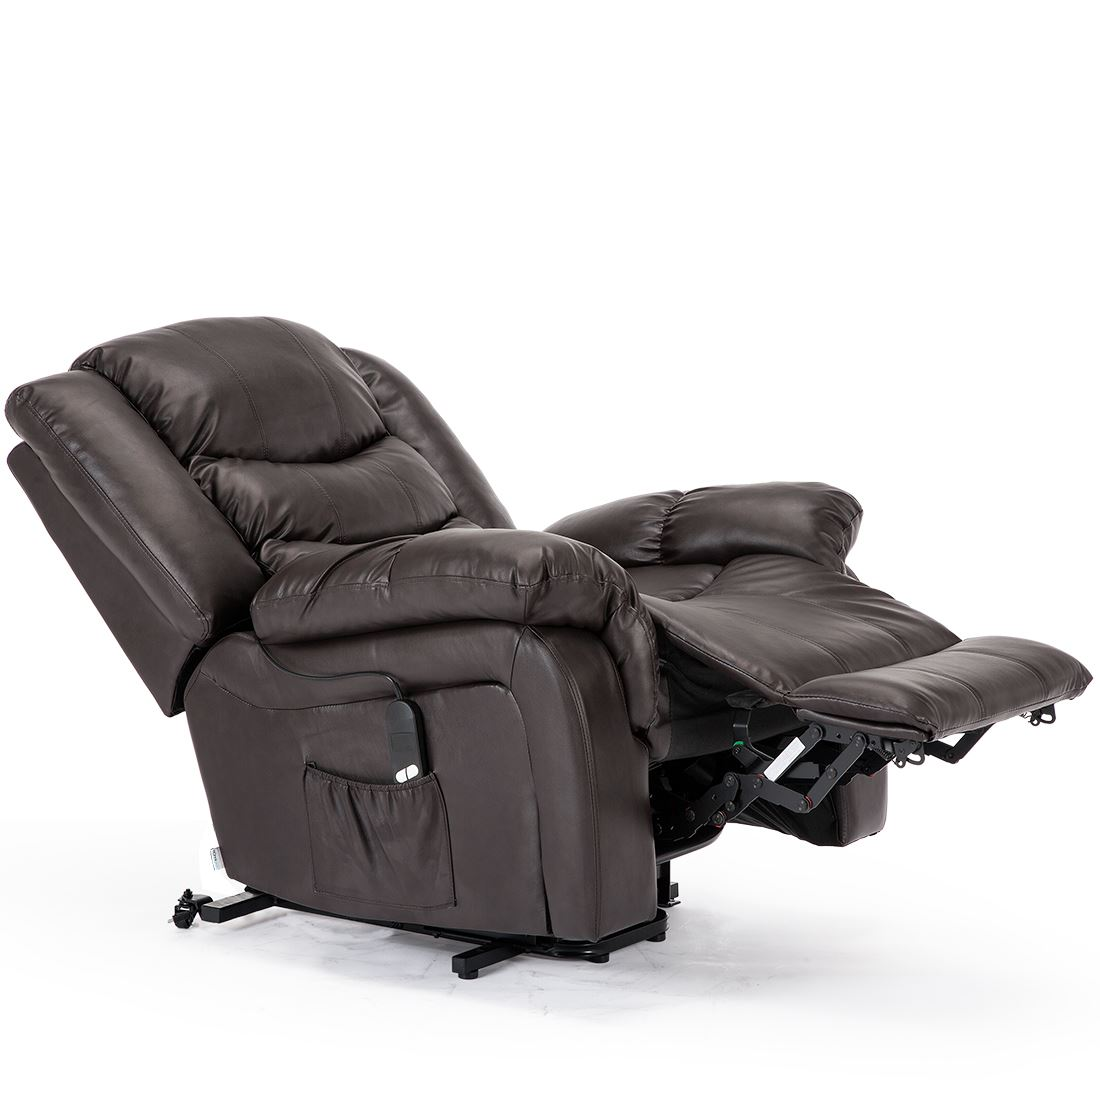 SEATTLE-ELECTRIC-RISE-REAL-LEATHER-RECLINER-ARMCHAIR-SOFA-HOME-LOUNGE-CHAIR thumbnail 15